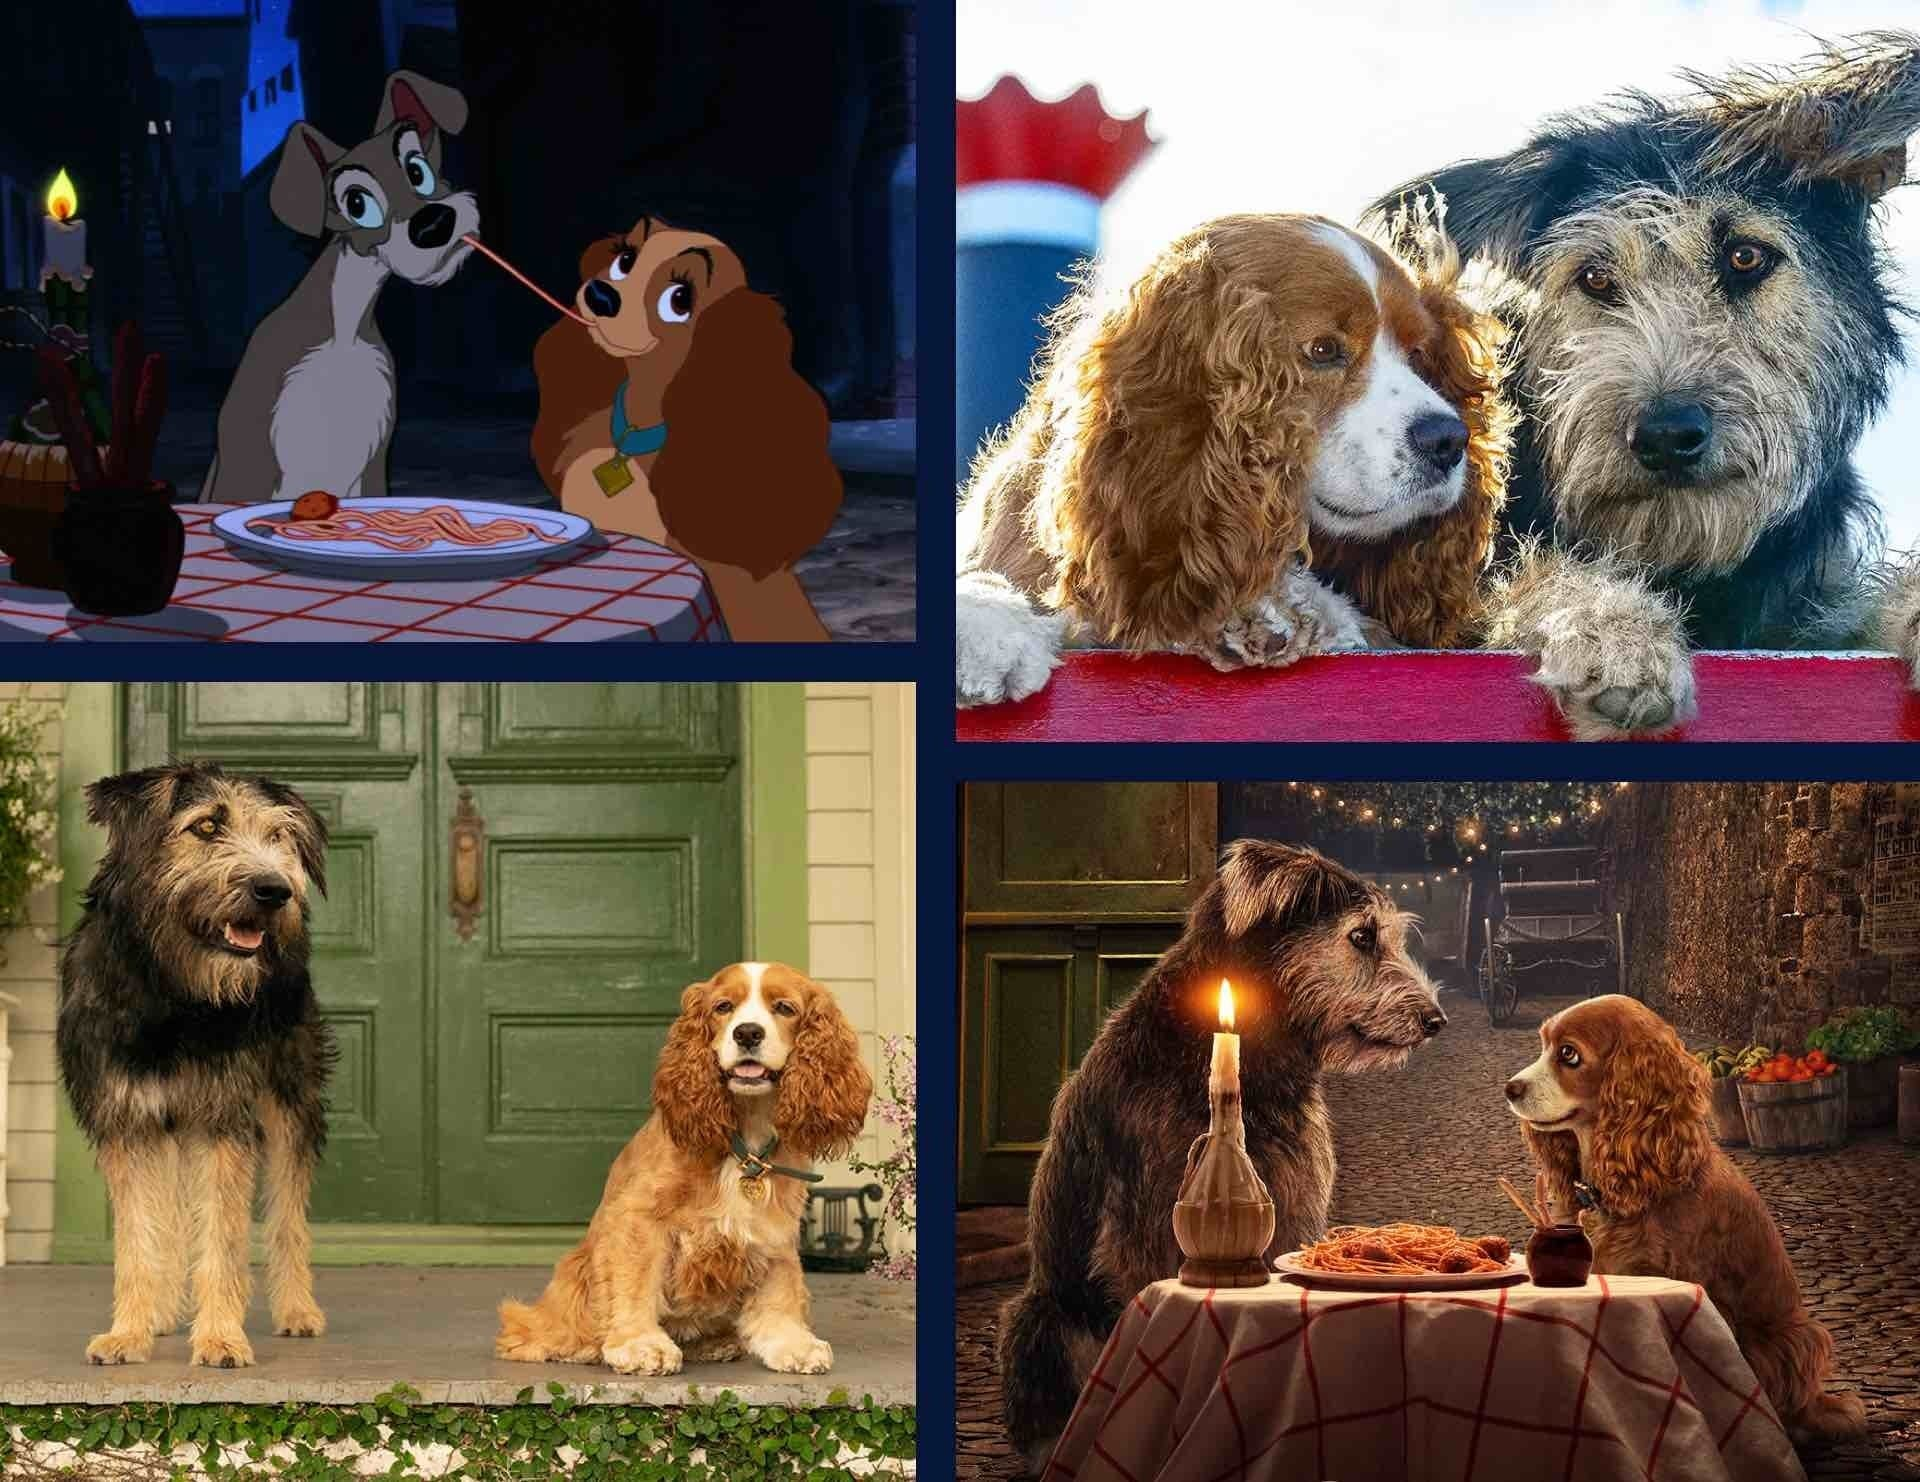 A still image from Lady and the Tramp